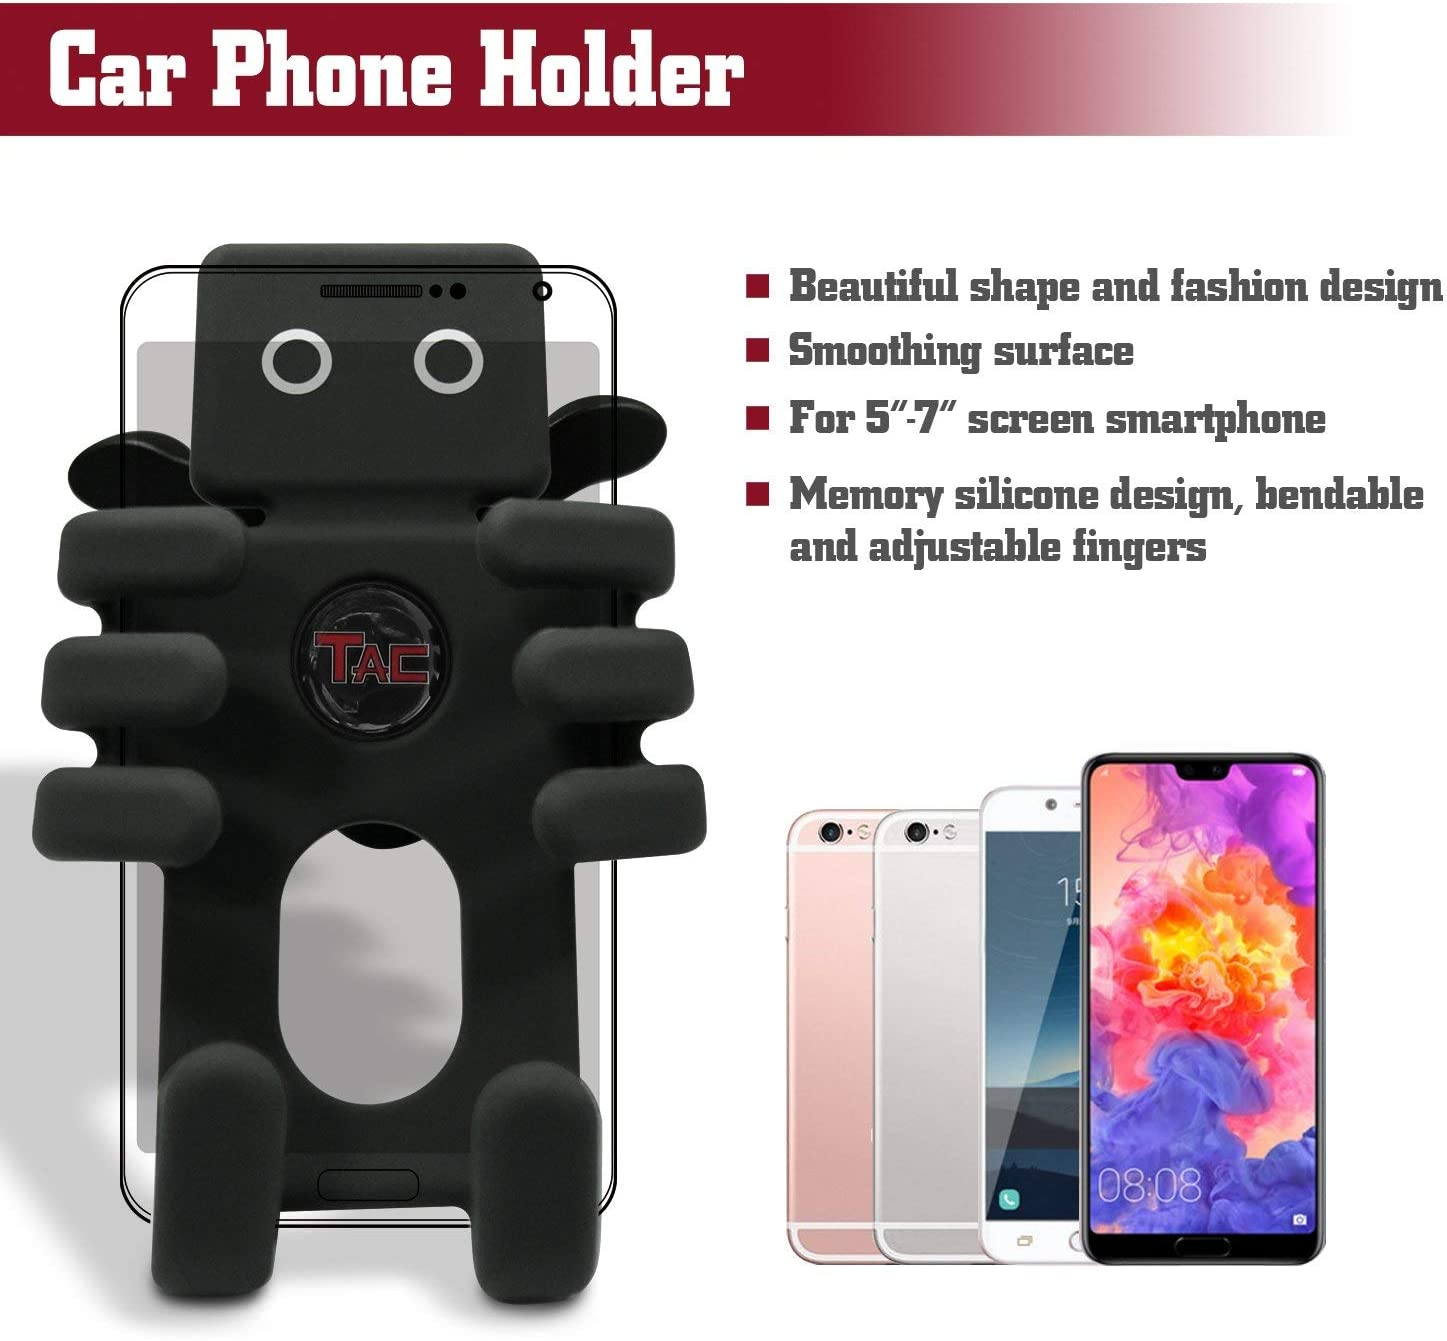 Include Apple iPhone, Samsung, HTC, Huawei TAC Car Phone Mount Universal Cell Phone Silicon Holder Car Cradle Fit 5 to 7/All Smartphones and GPS Devices